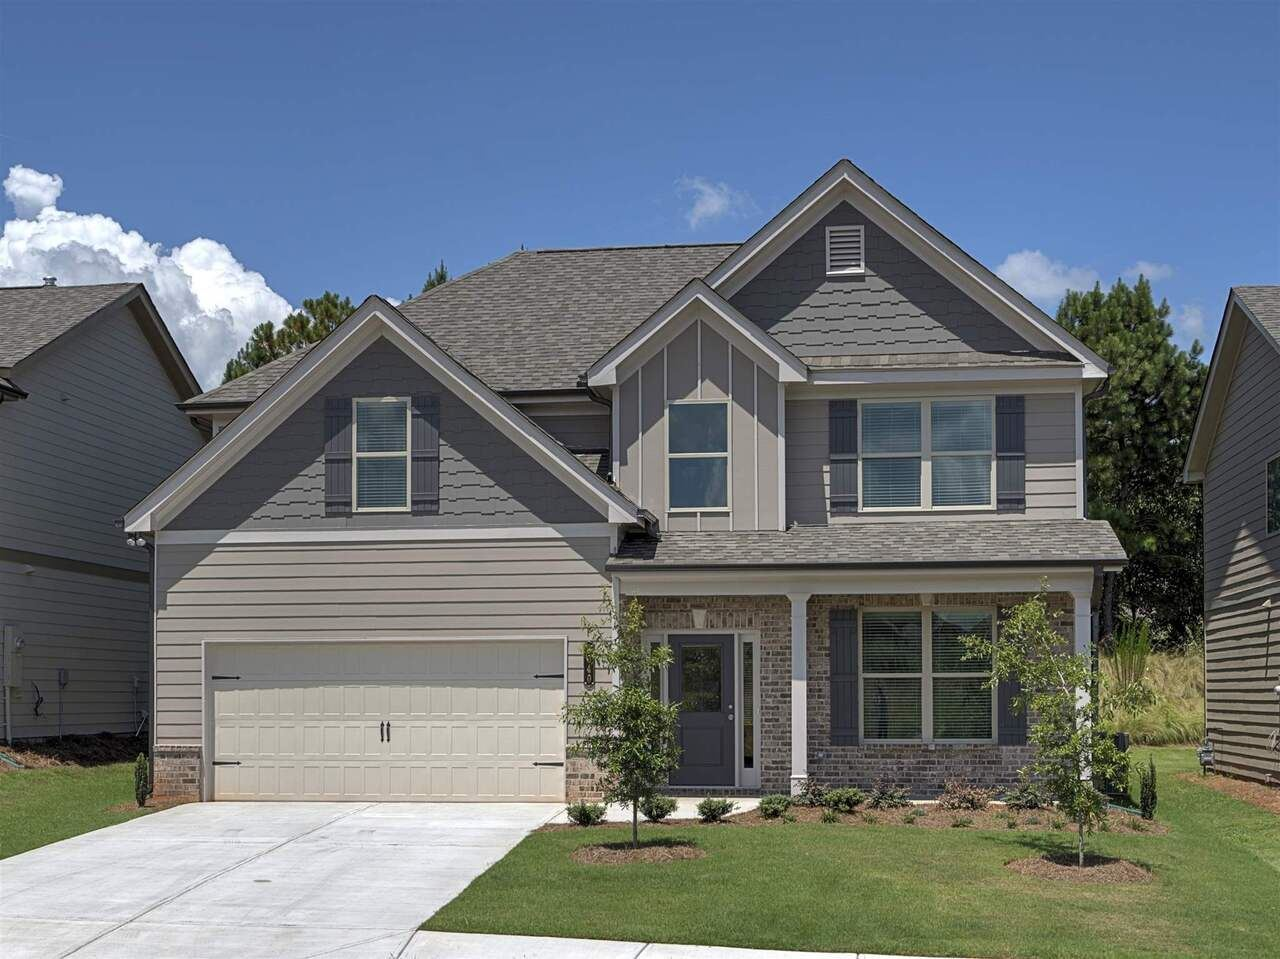 6081 Bay Point Cv, Flowery Branch, GA 30542 - #: 8860303